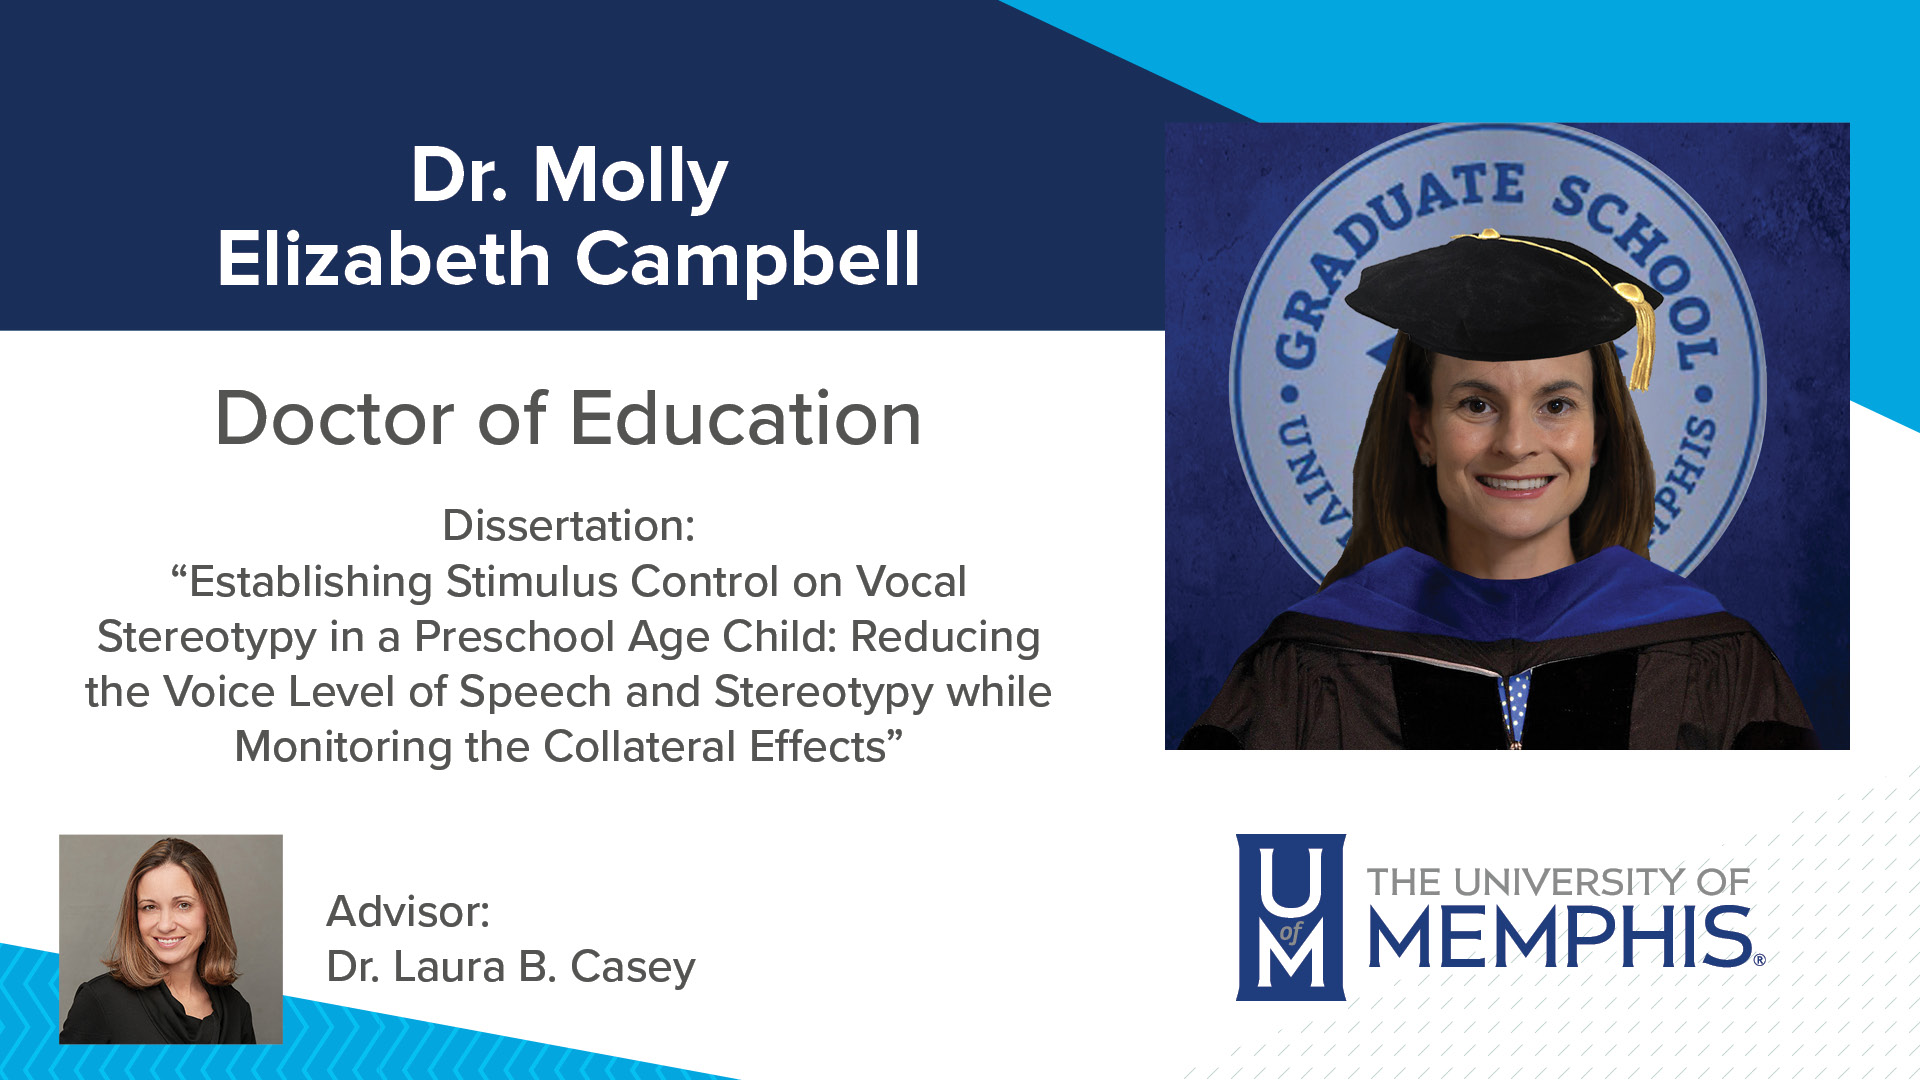 """Dr. Molly Elizabeth Campbell Dissertation: """"Establishing Stimulus Control on Vocal Stereotypy in a Preschool Age Child: Reducing the Voice Level of Speech and Stereotypy while Monitoring the Collateral Effects """" Major Professor: Dr. Laura B Casey"""